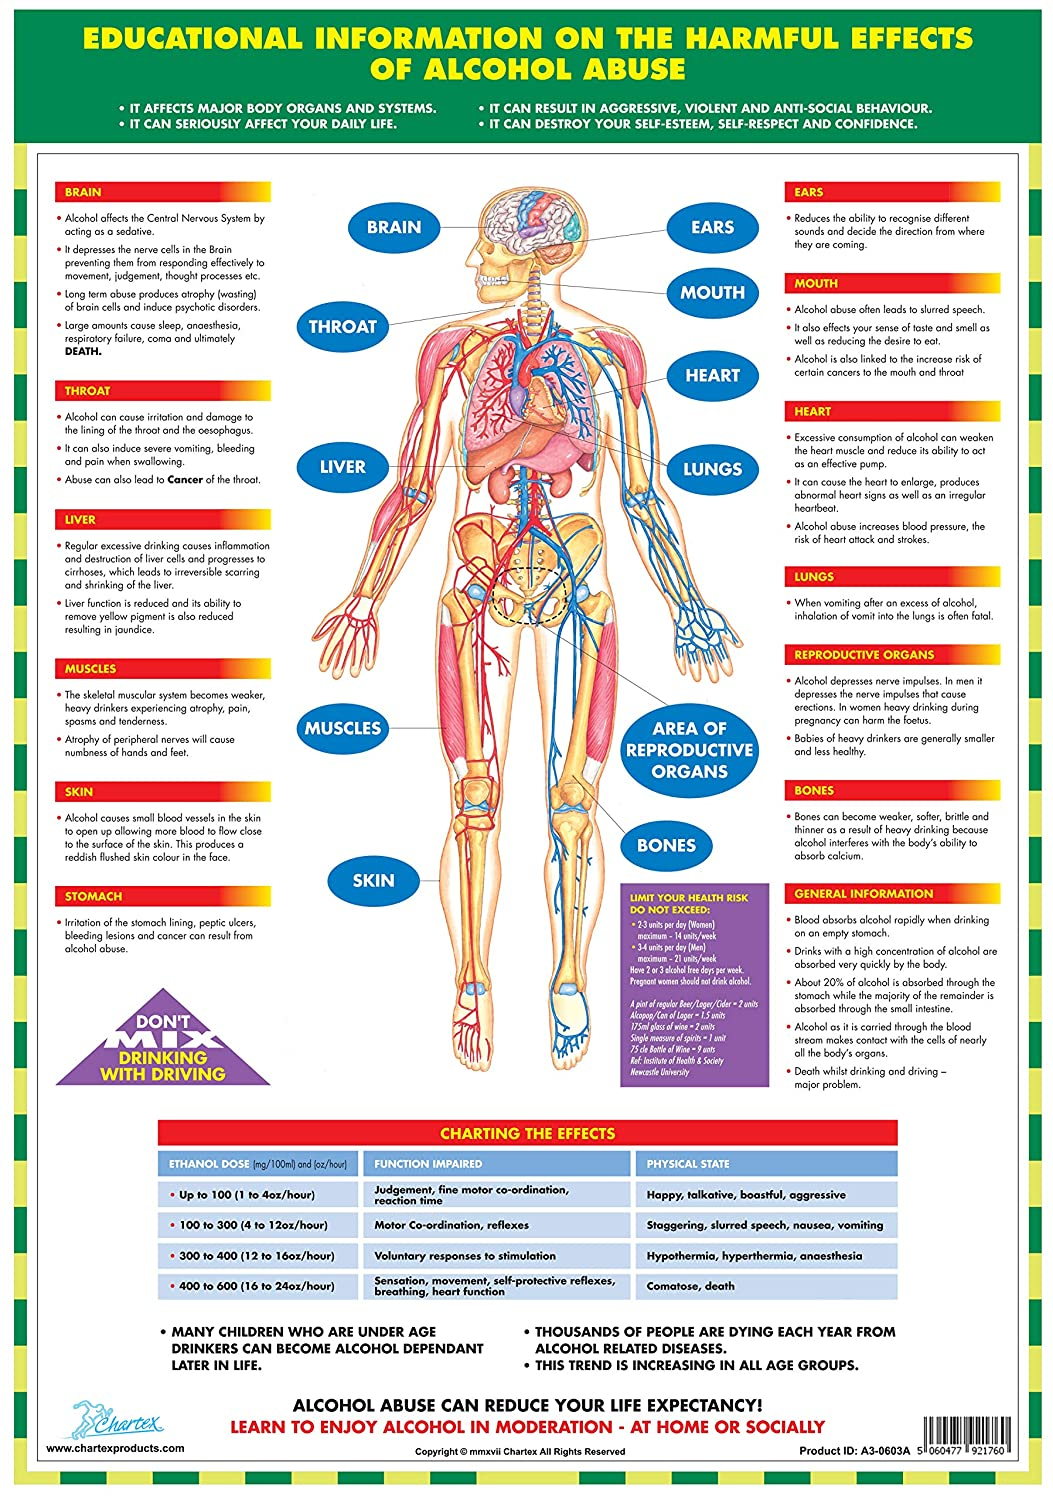 A2P-0603A Chartex Effects of Alcohol Chart Paper Format Size A2 Personal Health Series